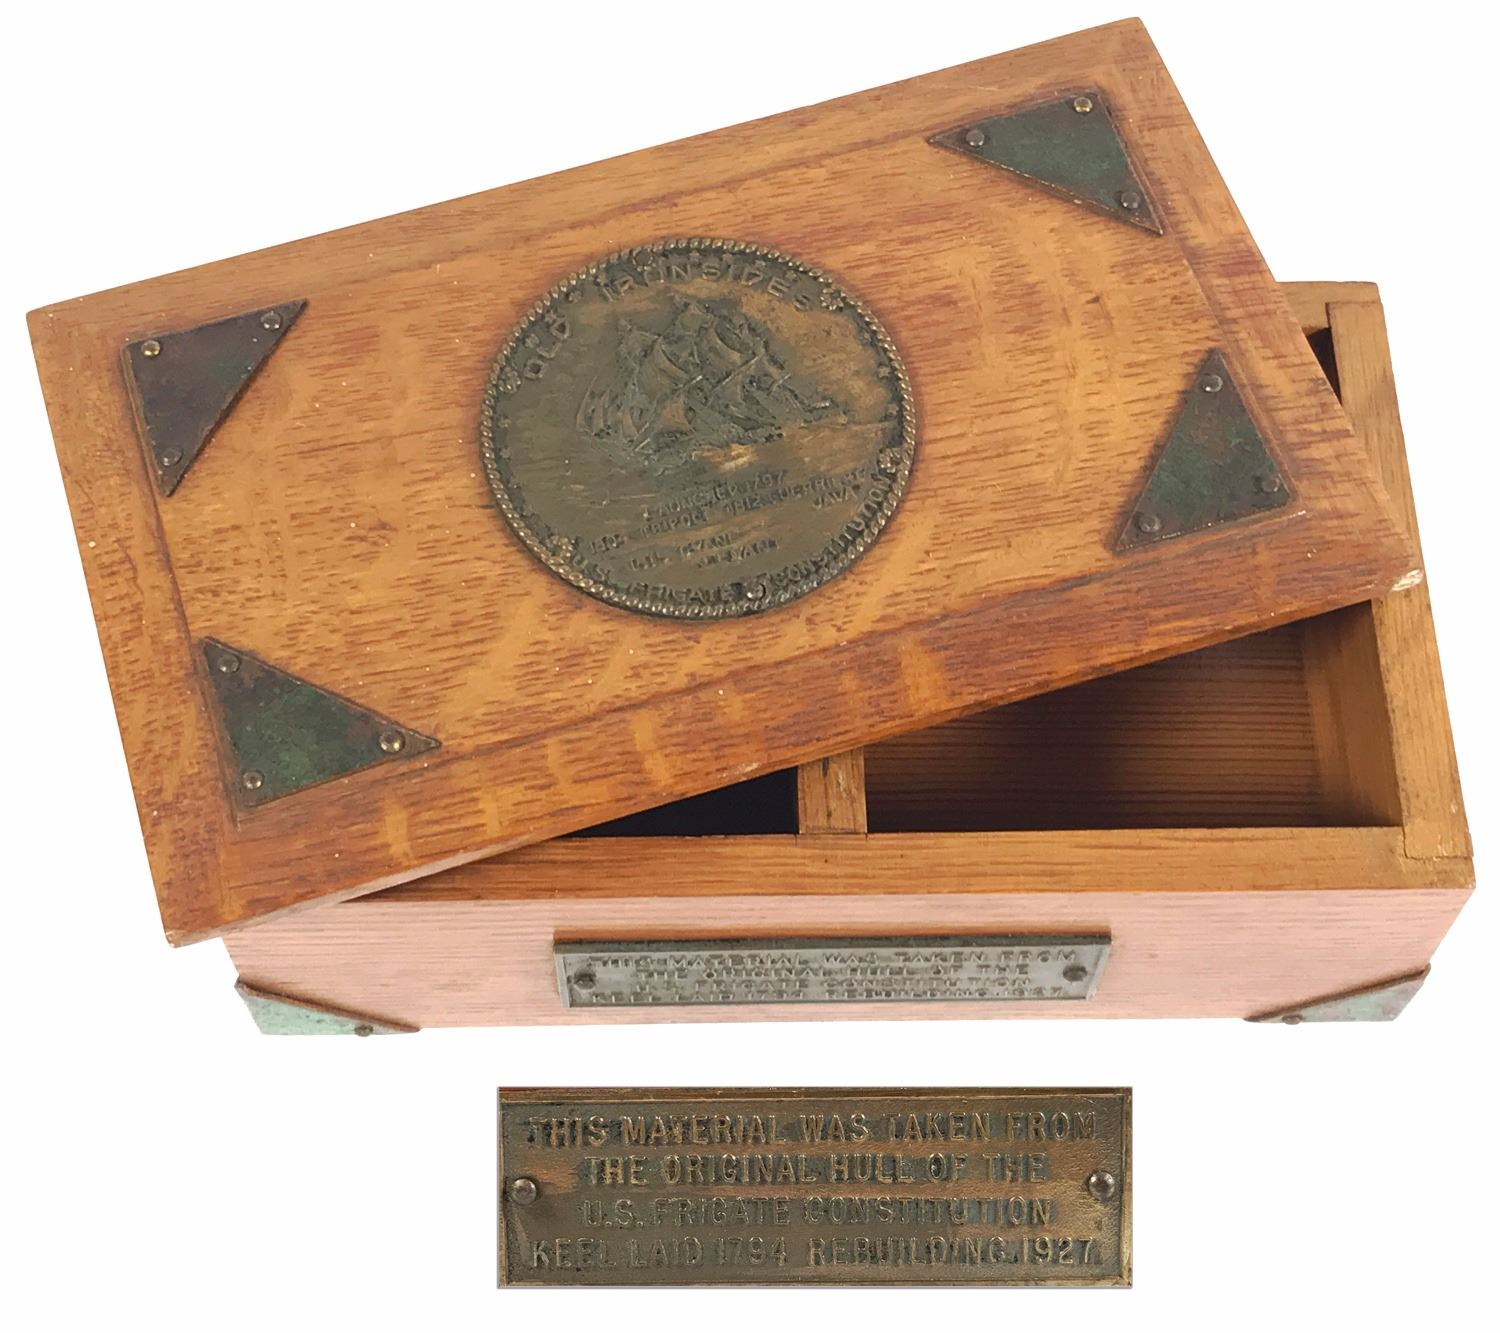 Oak wood box with plaque made from pieces of the uss